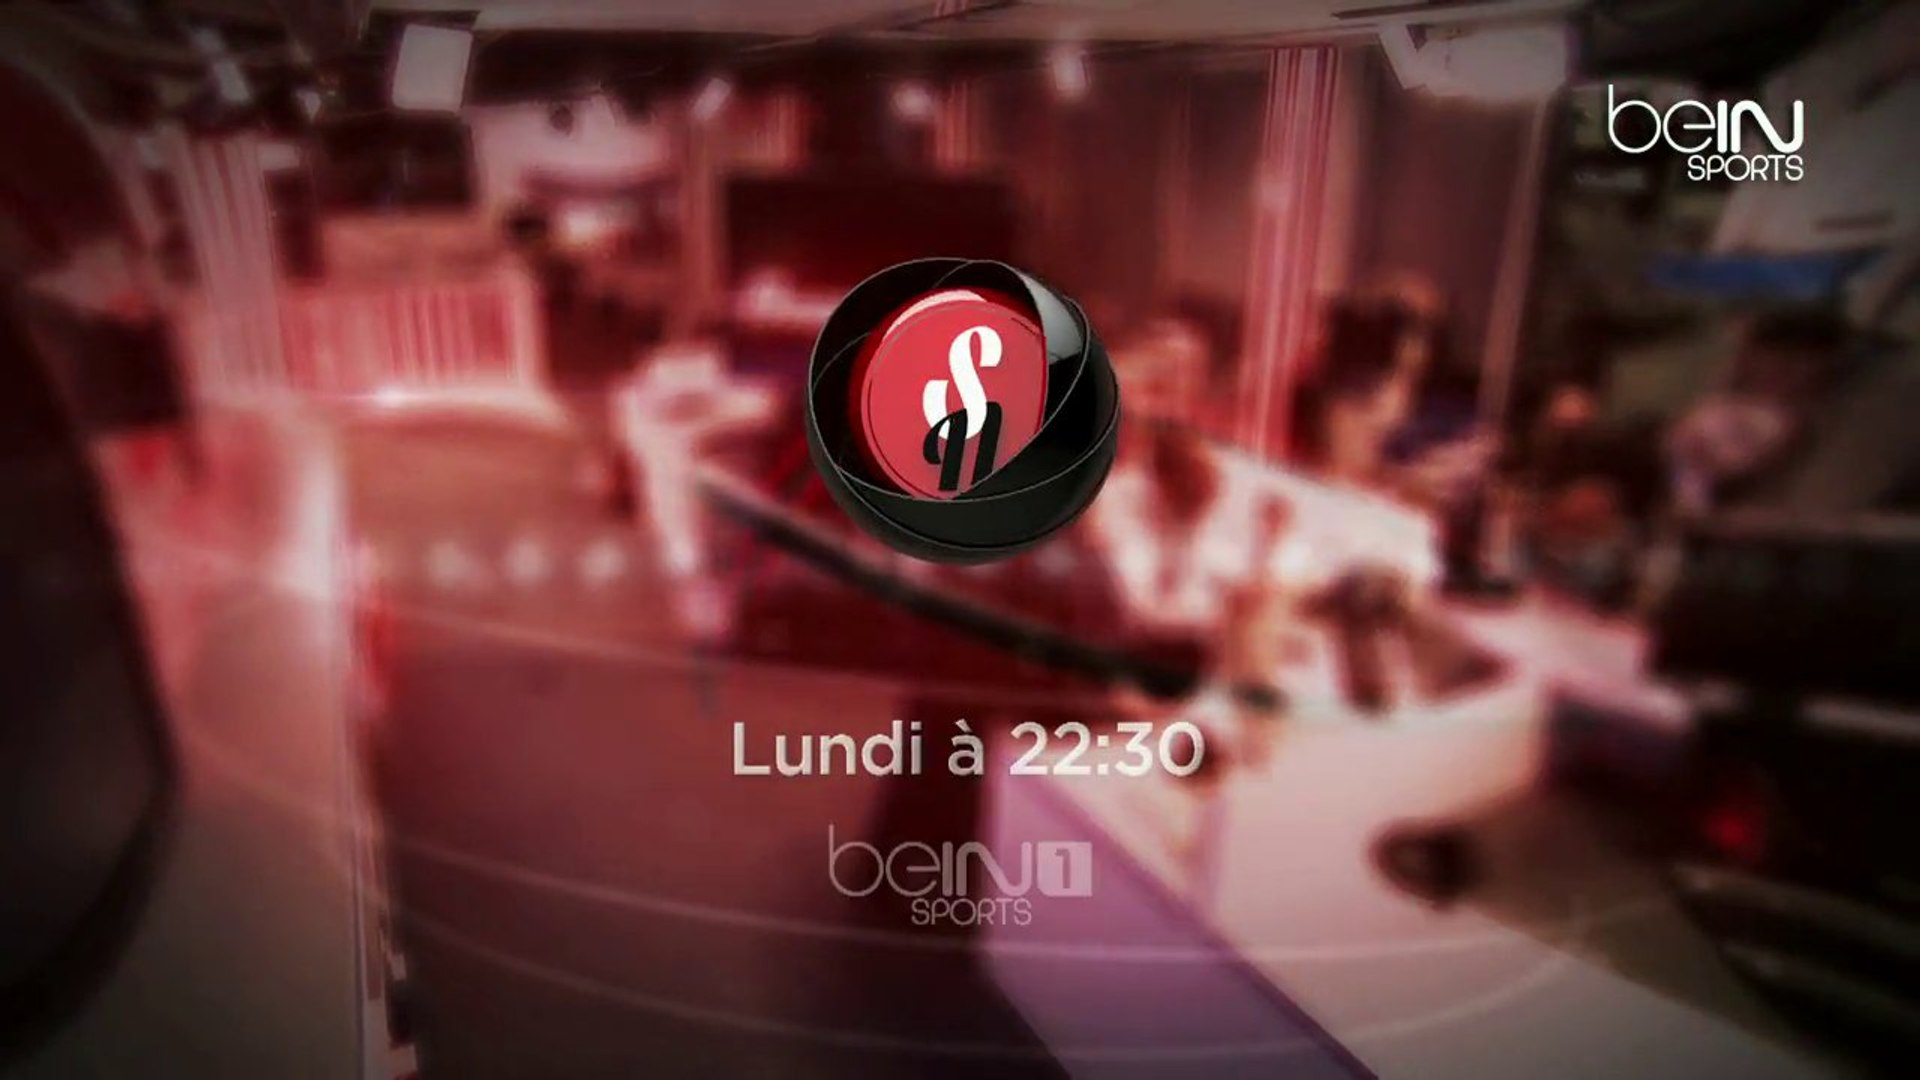 [SPORTS NIGHT] En direct, du lundi au jeudi de 22H30 à 00H00, sur beIN SPORTS 1